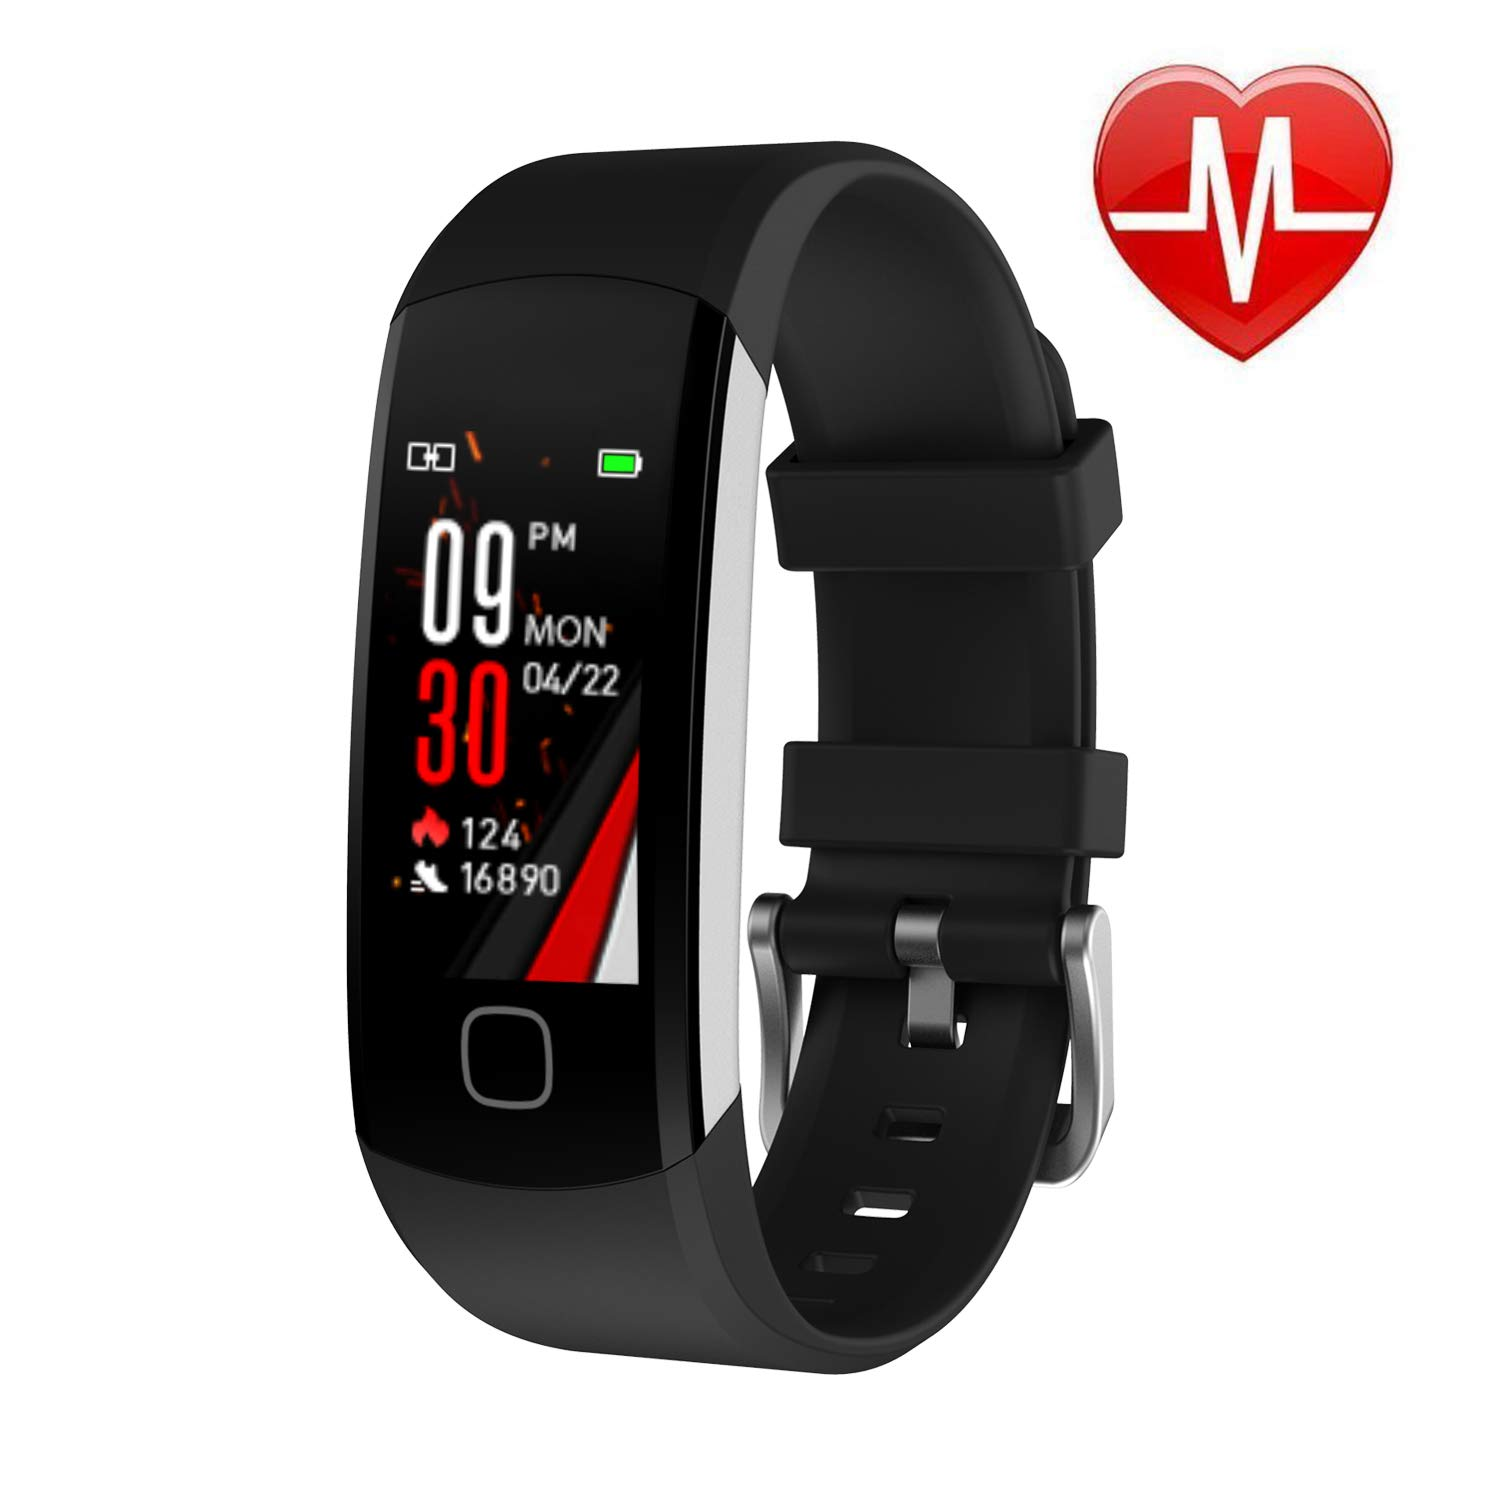 L8star Continuous Waterproof Activity Pedometer